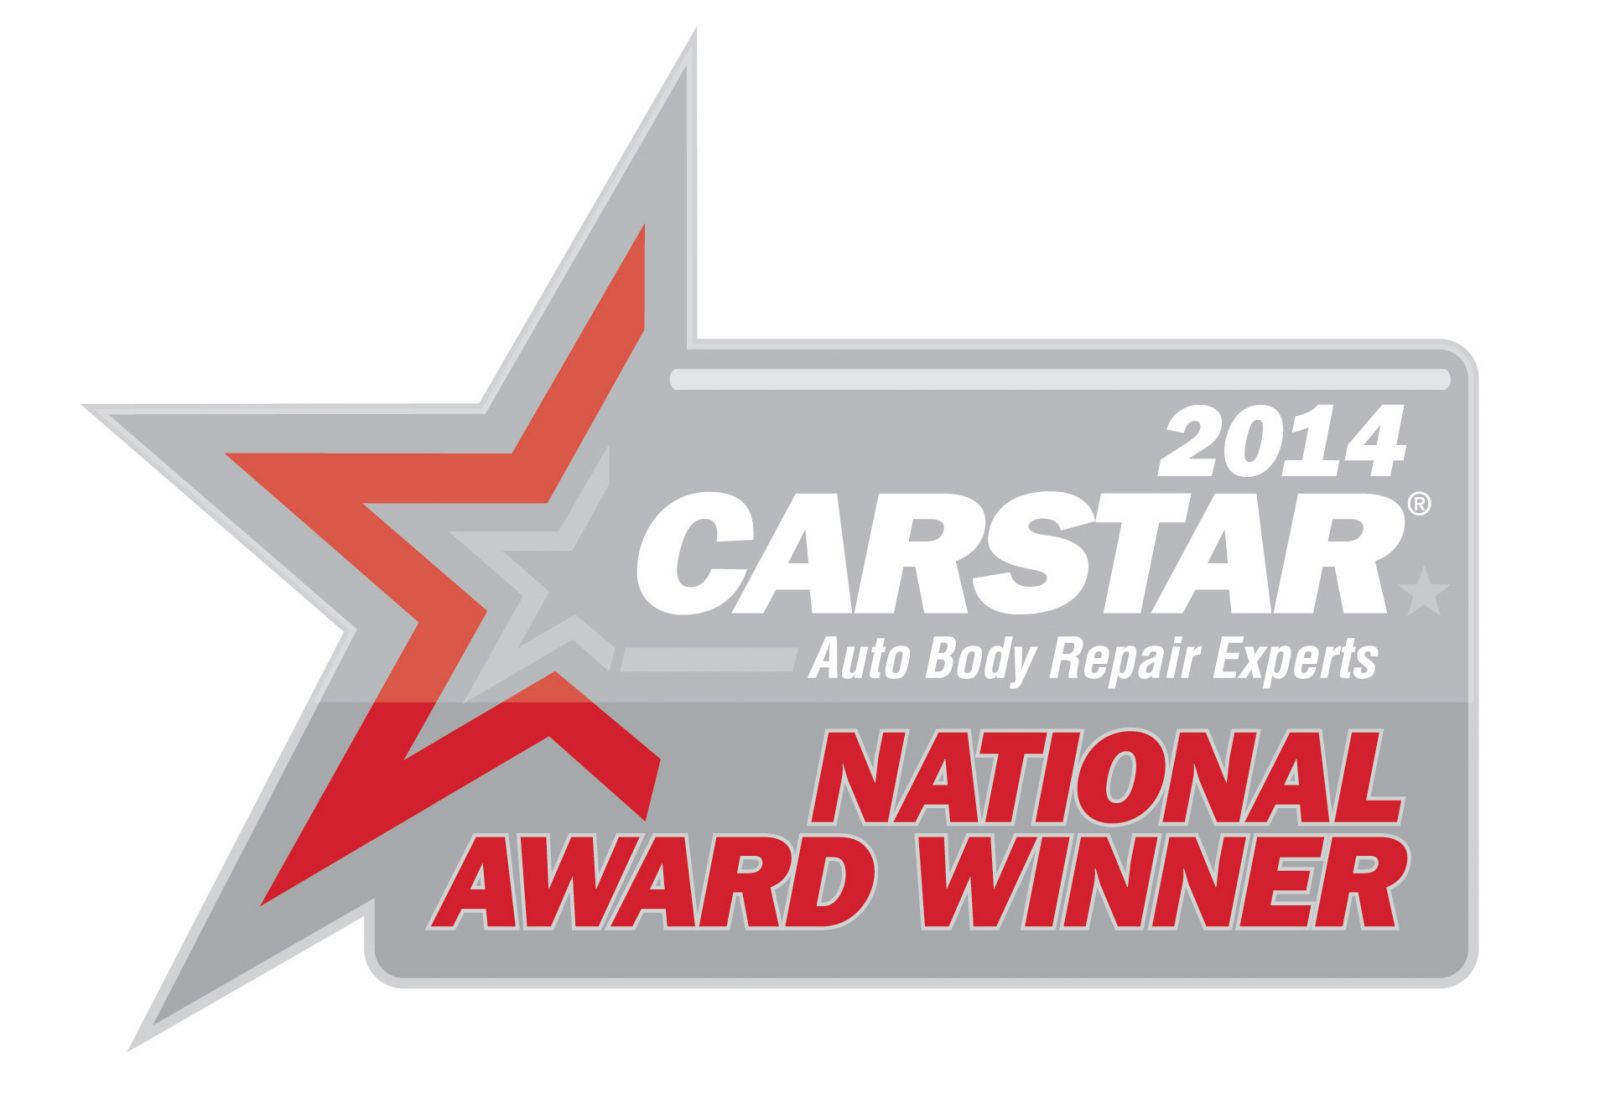 C & H CARSTAR: 2014 National Award Winner